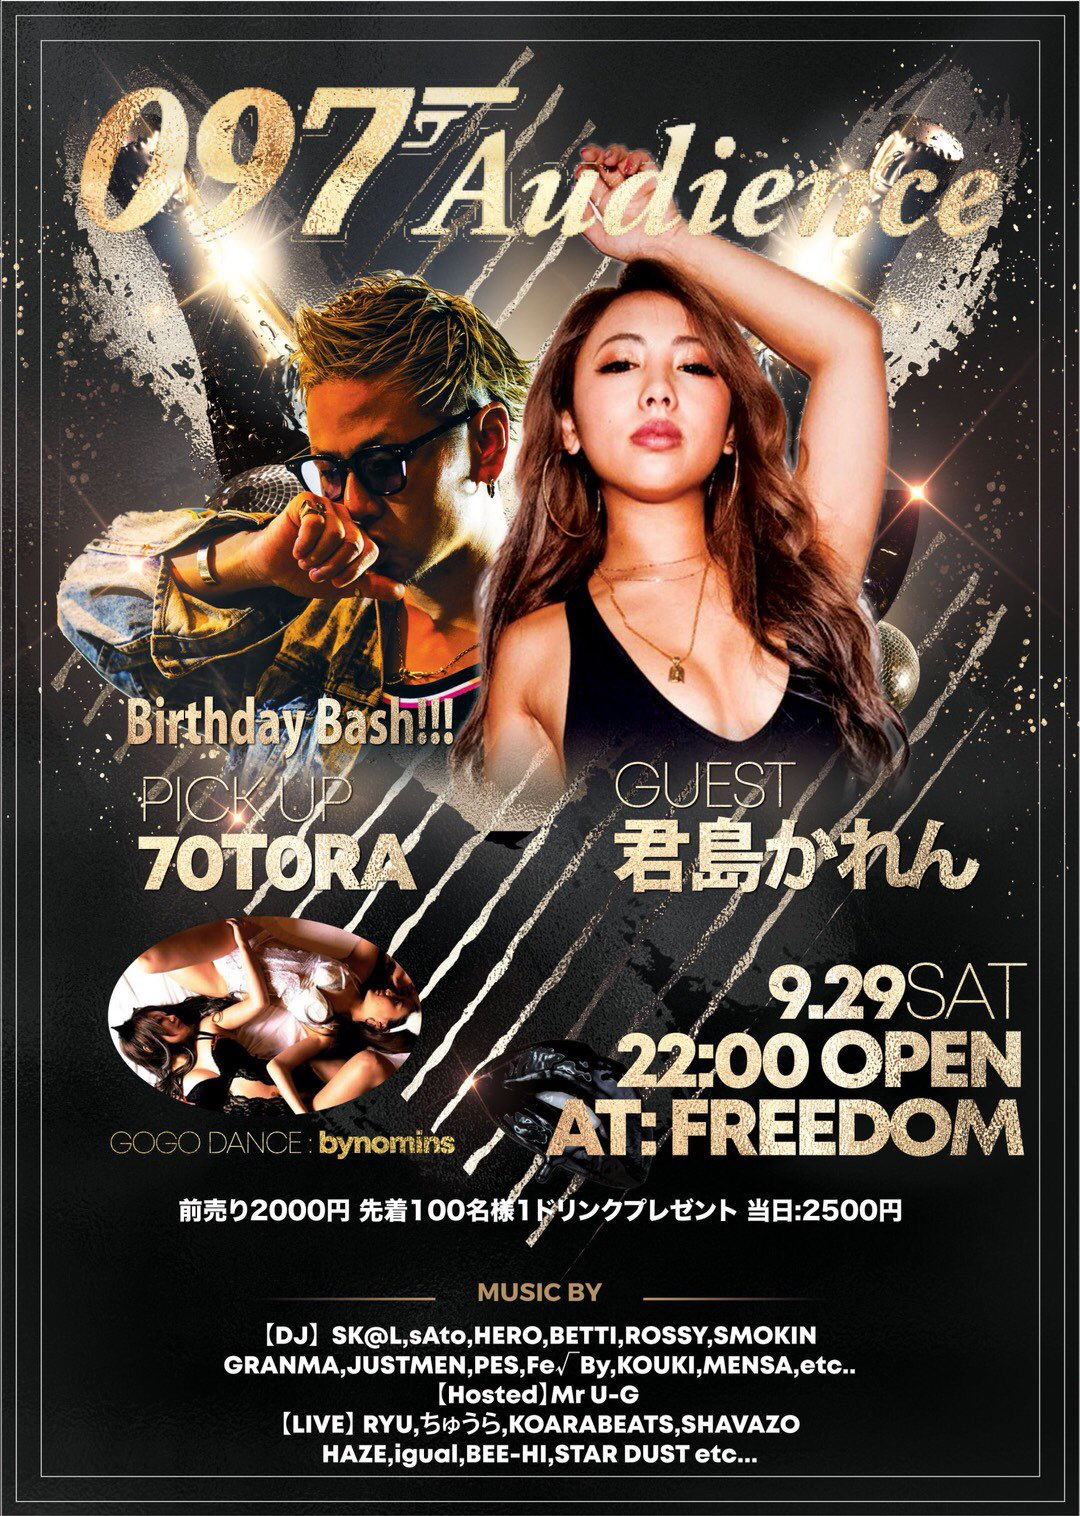 2018 09 29 sat 097audience guest 君島かれん pick up 70t0ra